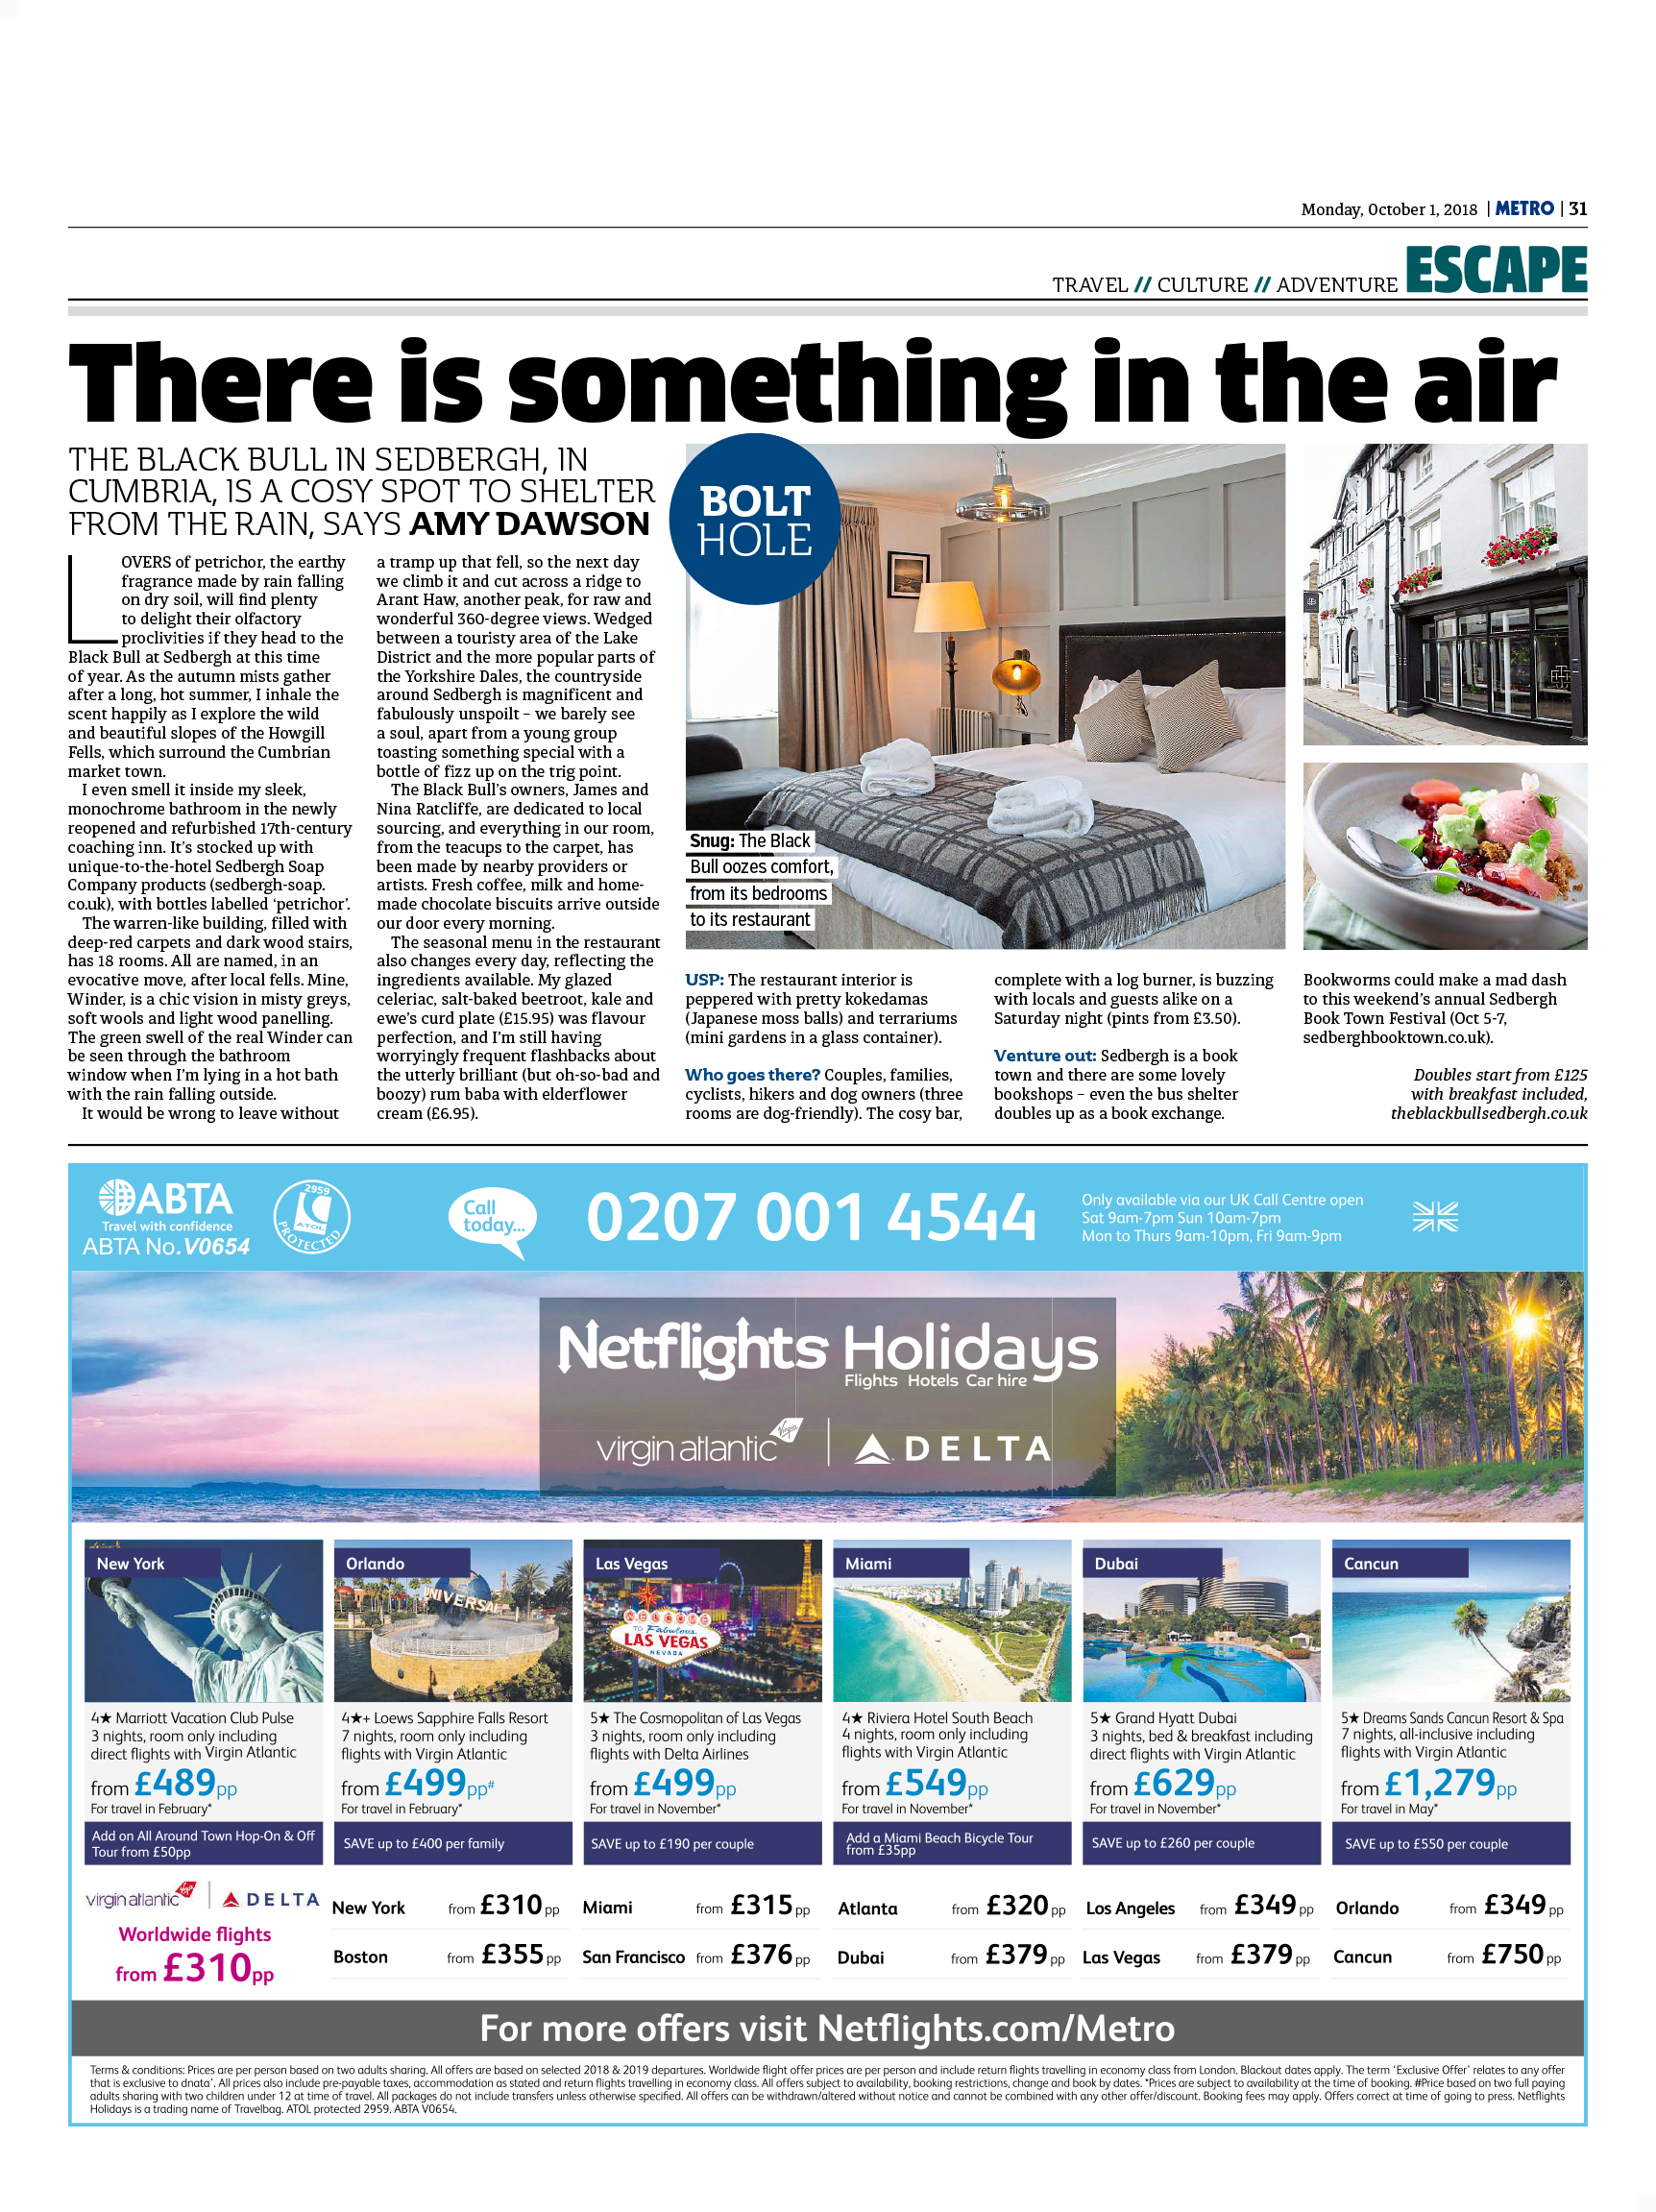 Bolt Hole: There is Something in the Air (Metro, 1st October 2018)